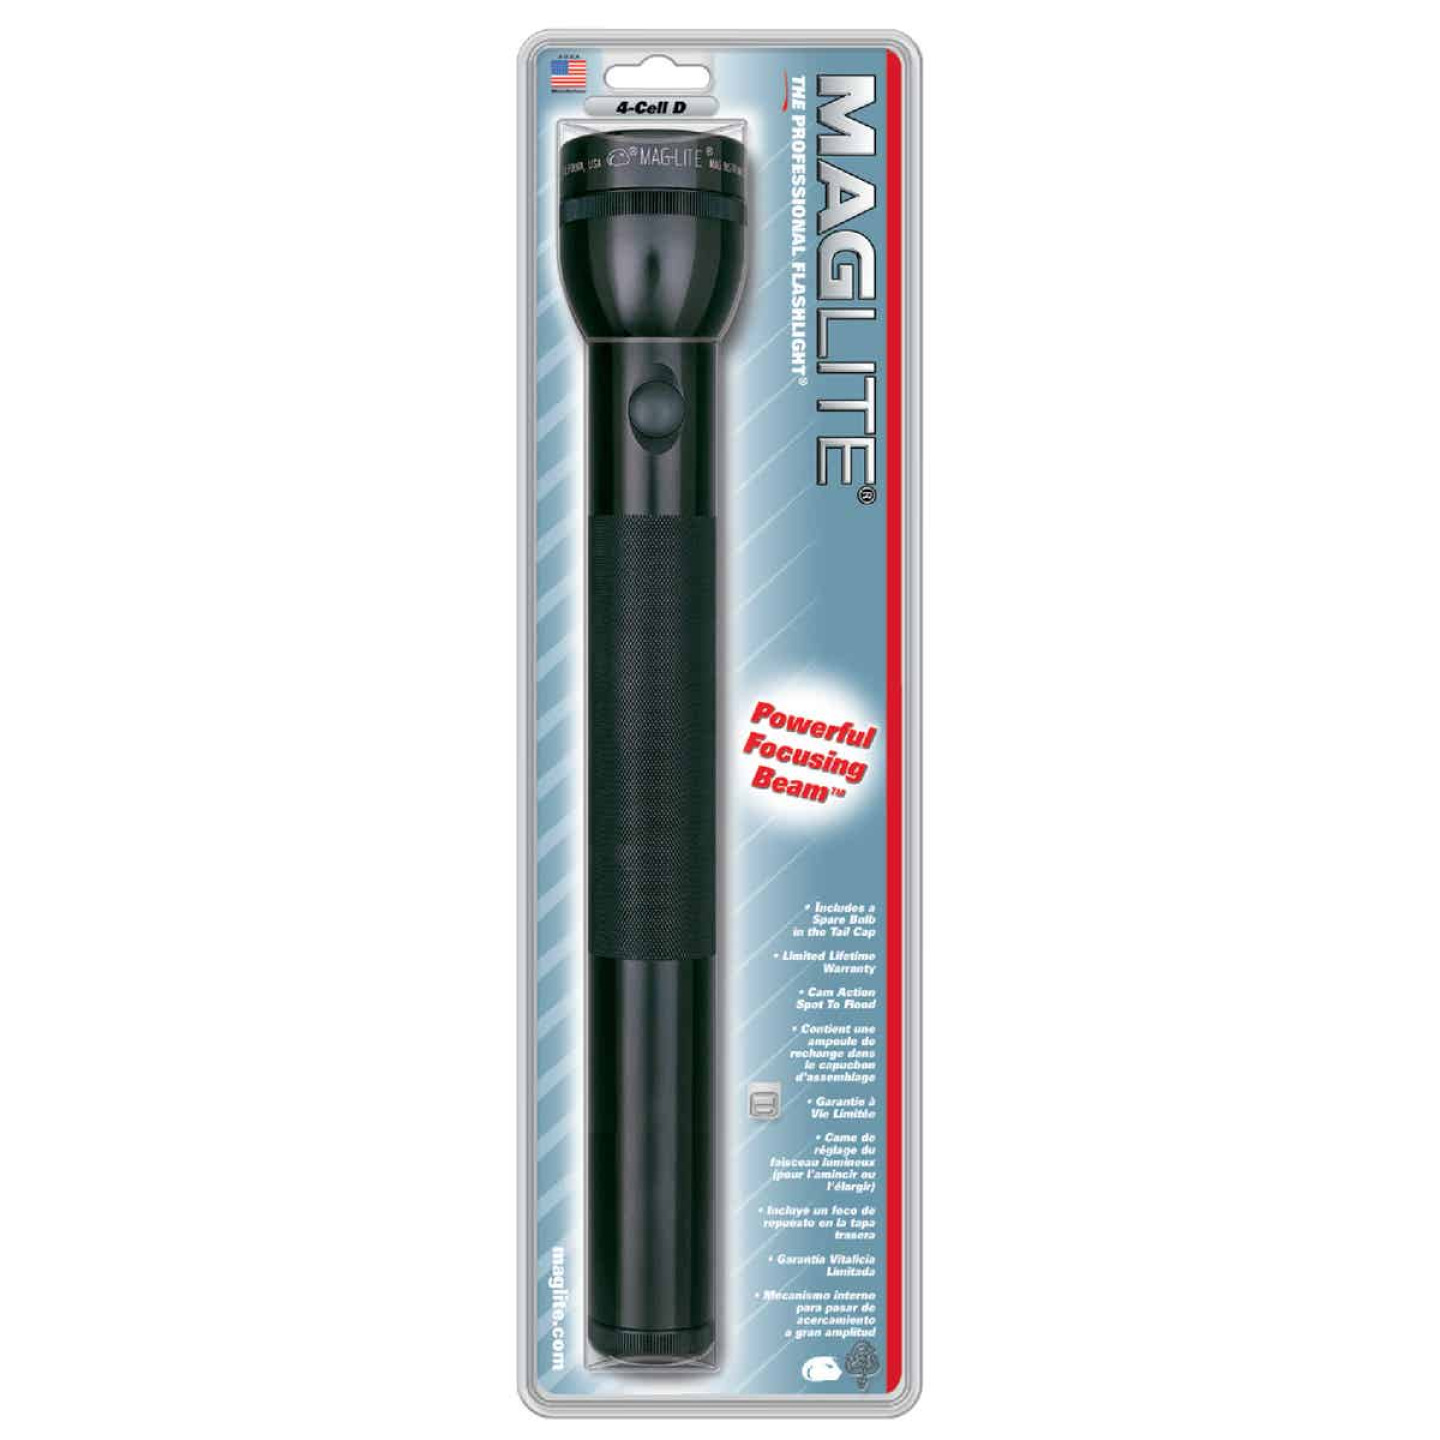 Maglite 98 Lm. Xenon 4D Flashlight, Black Image 3